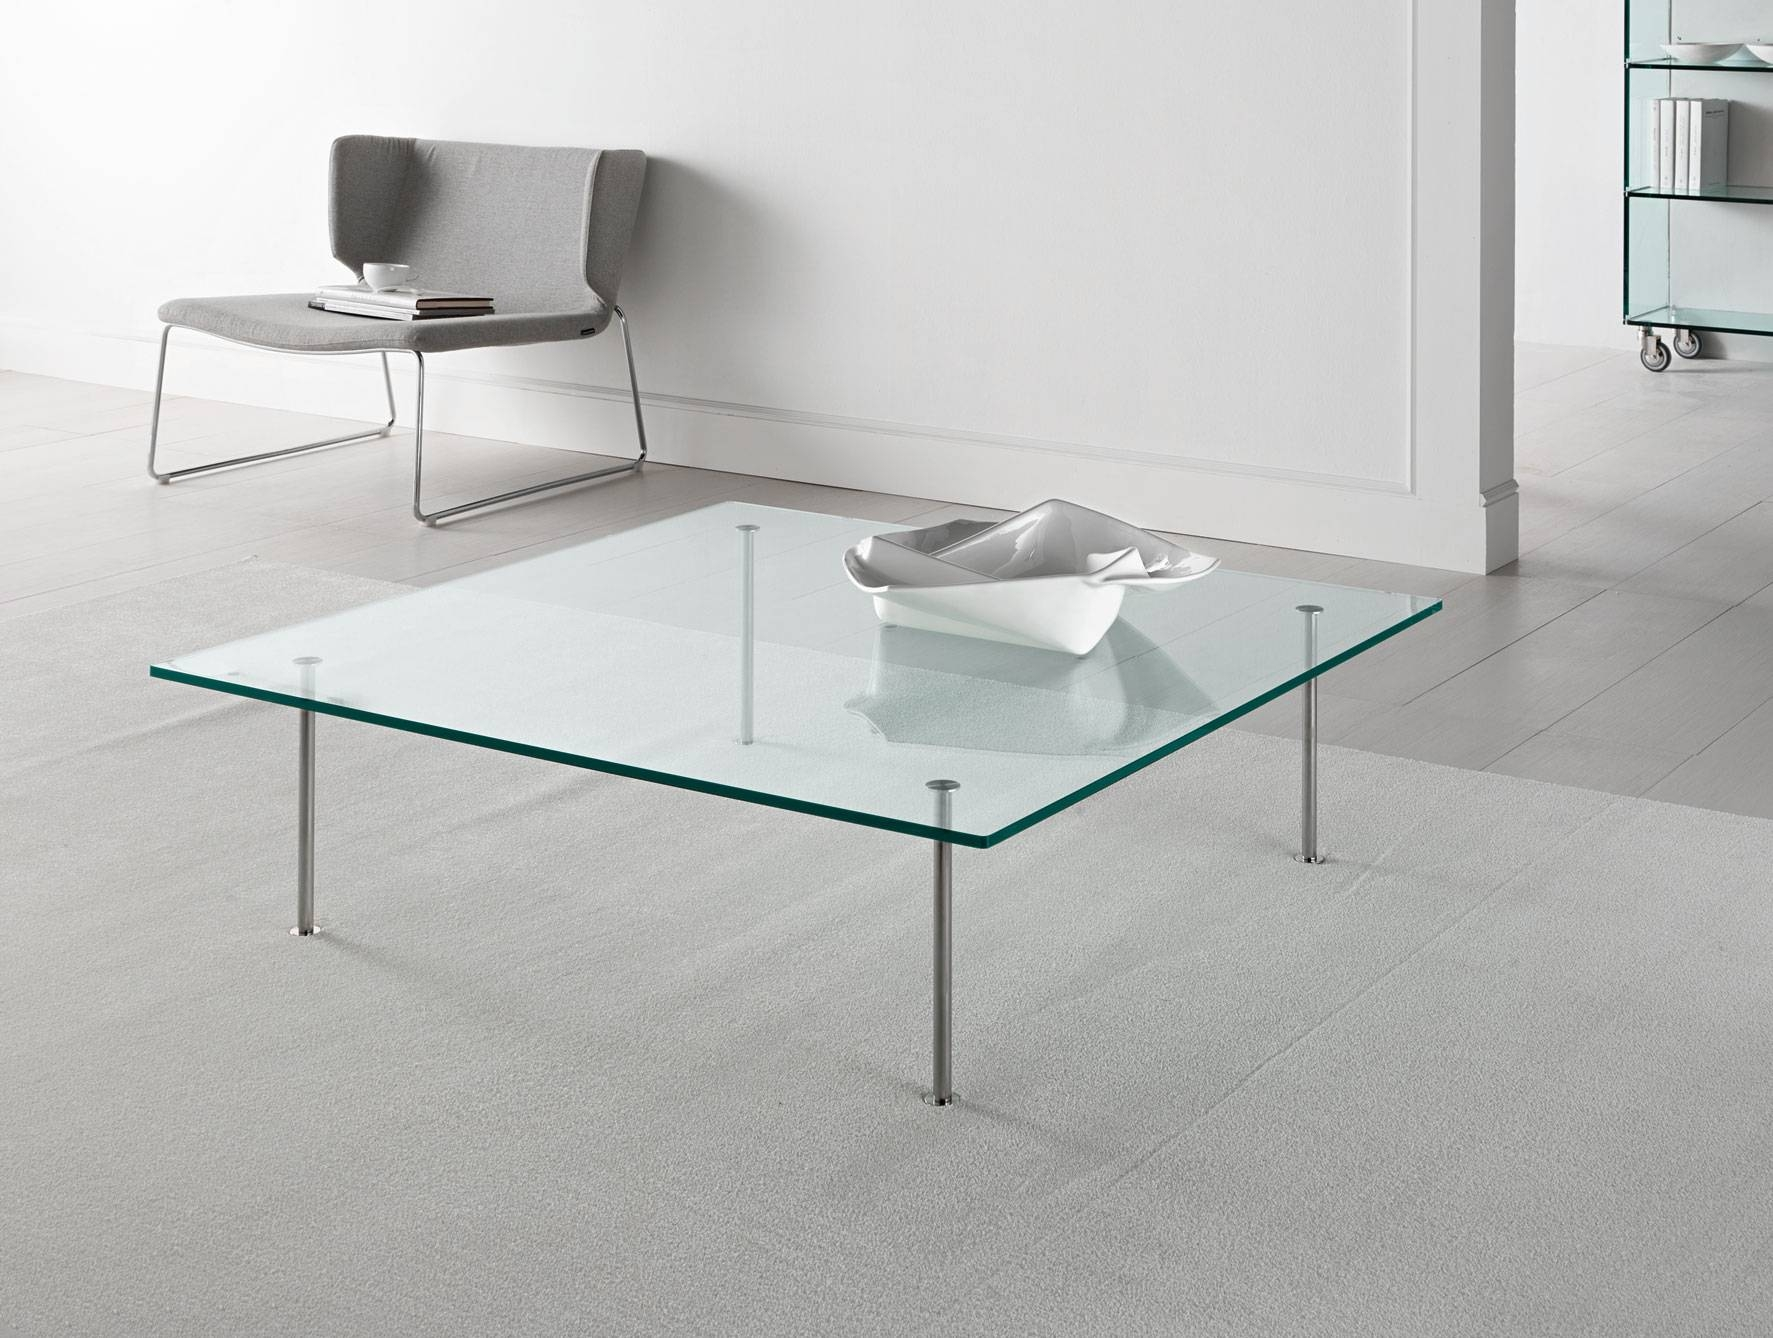 Designer Italian Luxury High End Coffee Tables: Nella Vetrina intended for Glass Square Coffee Tables (Image 15 of 30)